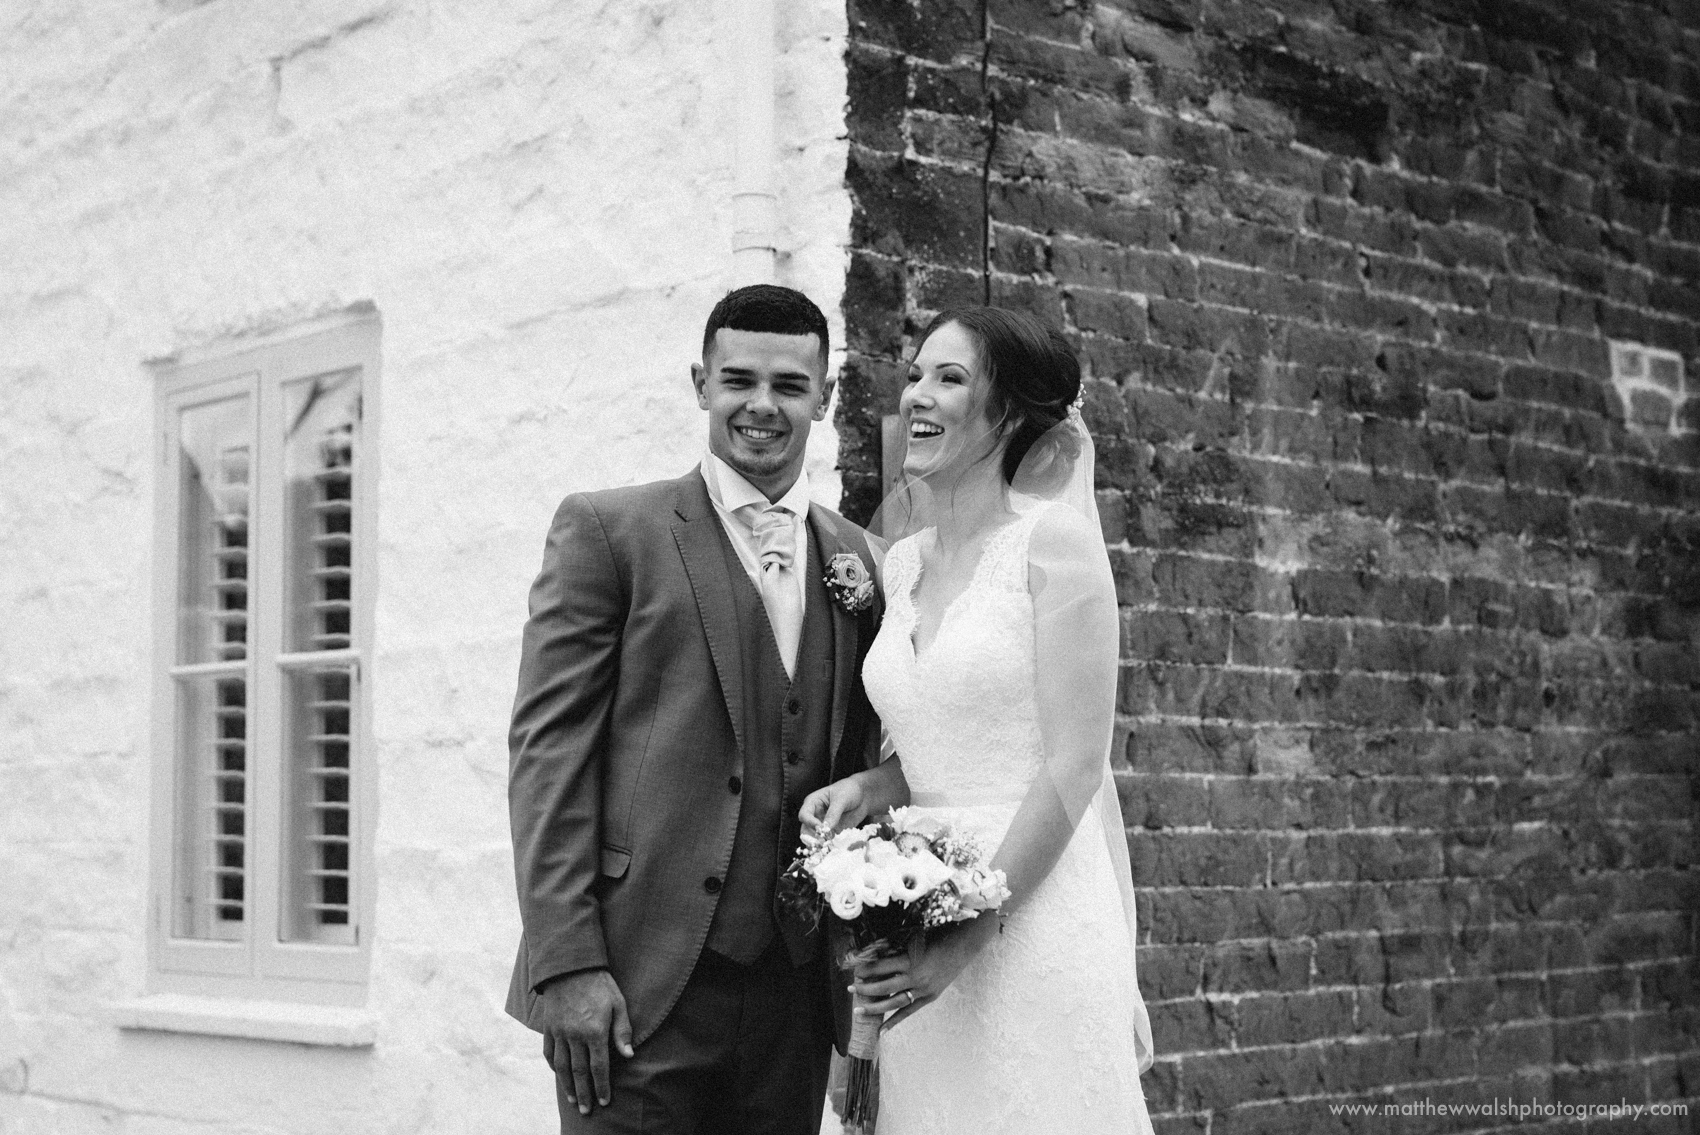 The super happy couple against the contrasting walls